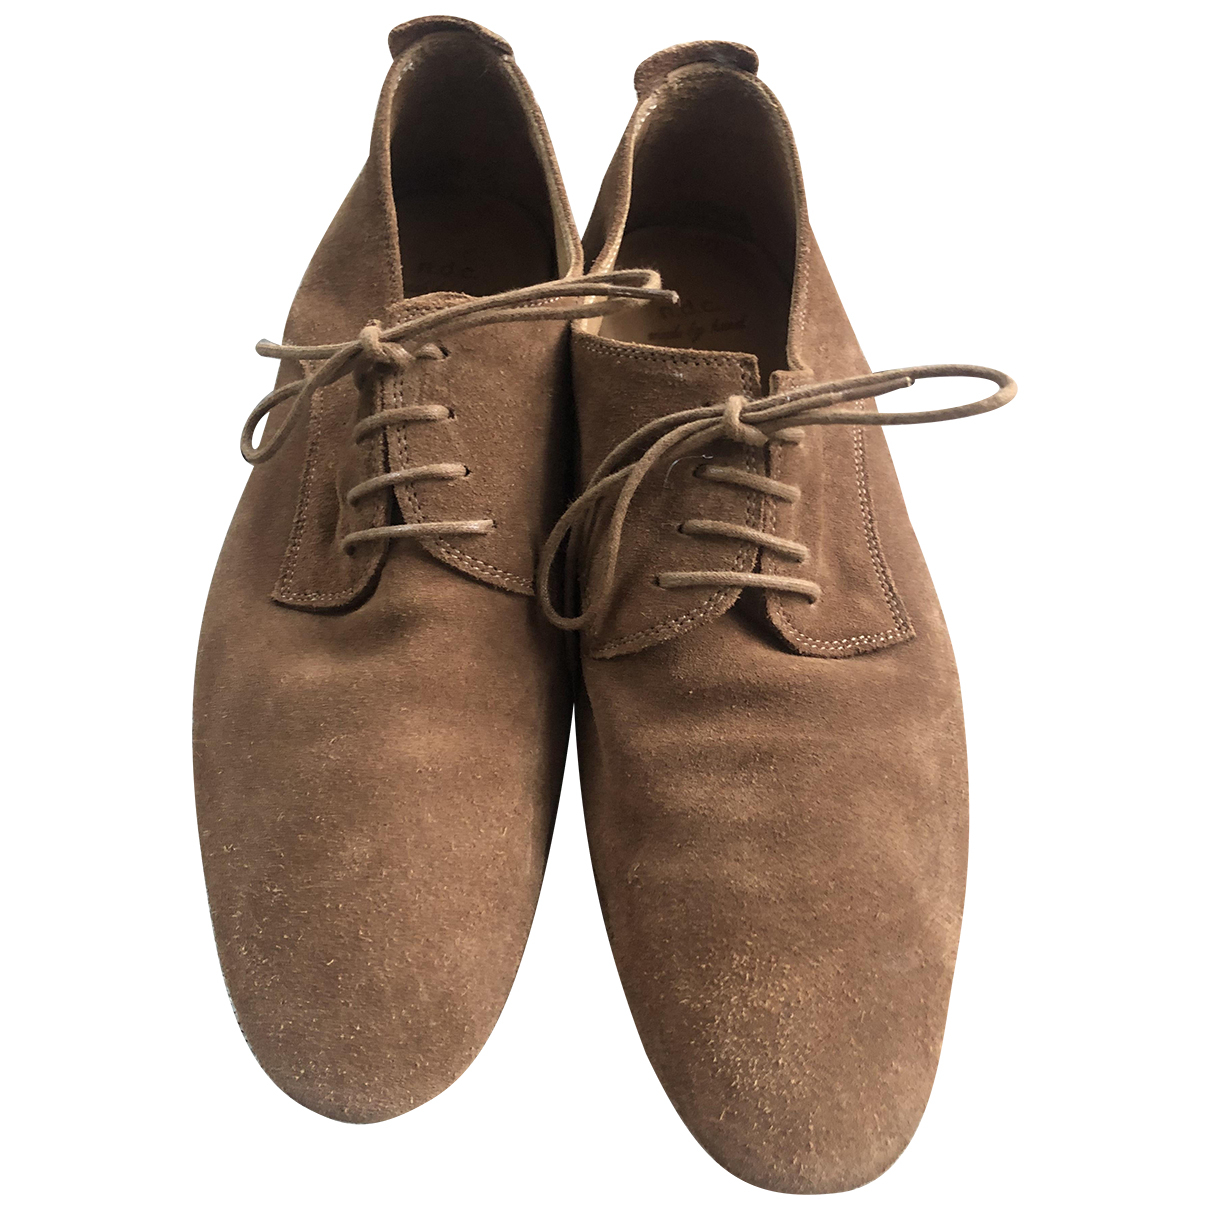 N.d.c. Made By Hand N Camel Leather Lace ups for Women 38 EU